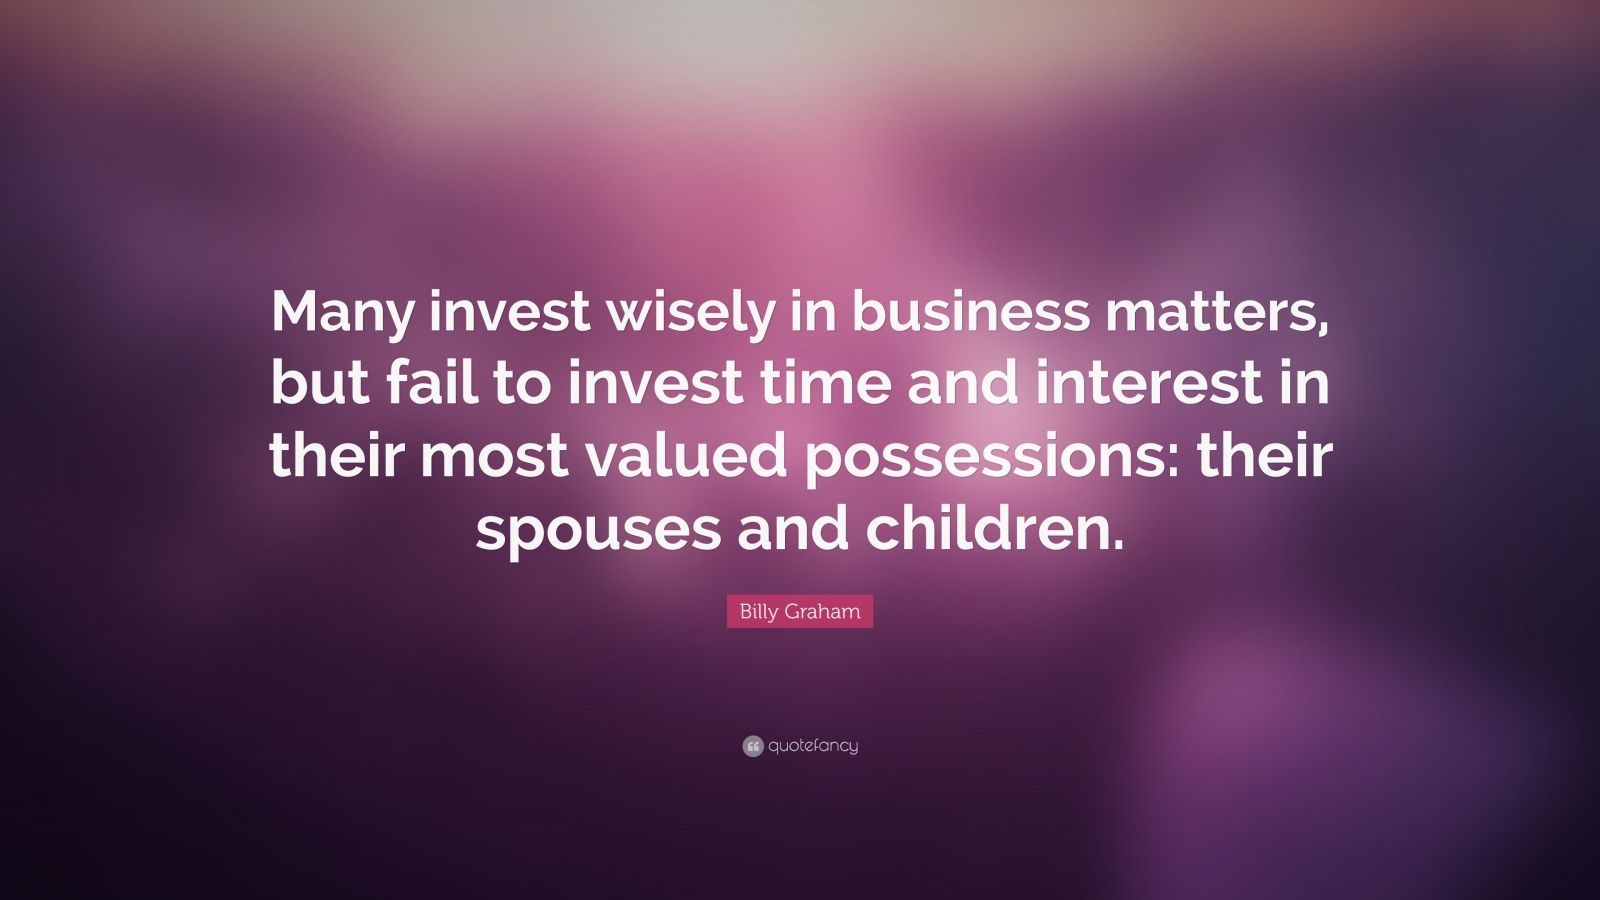 "Billy Graham Quote: ""Many invest wisely in business matters, but fail to invest time and interest in their most valued possessions: their spouses and children."""